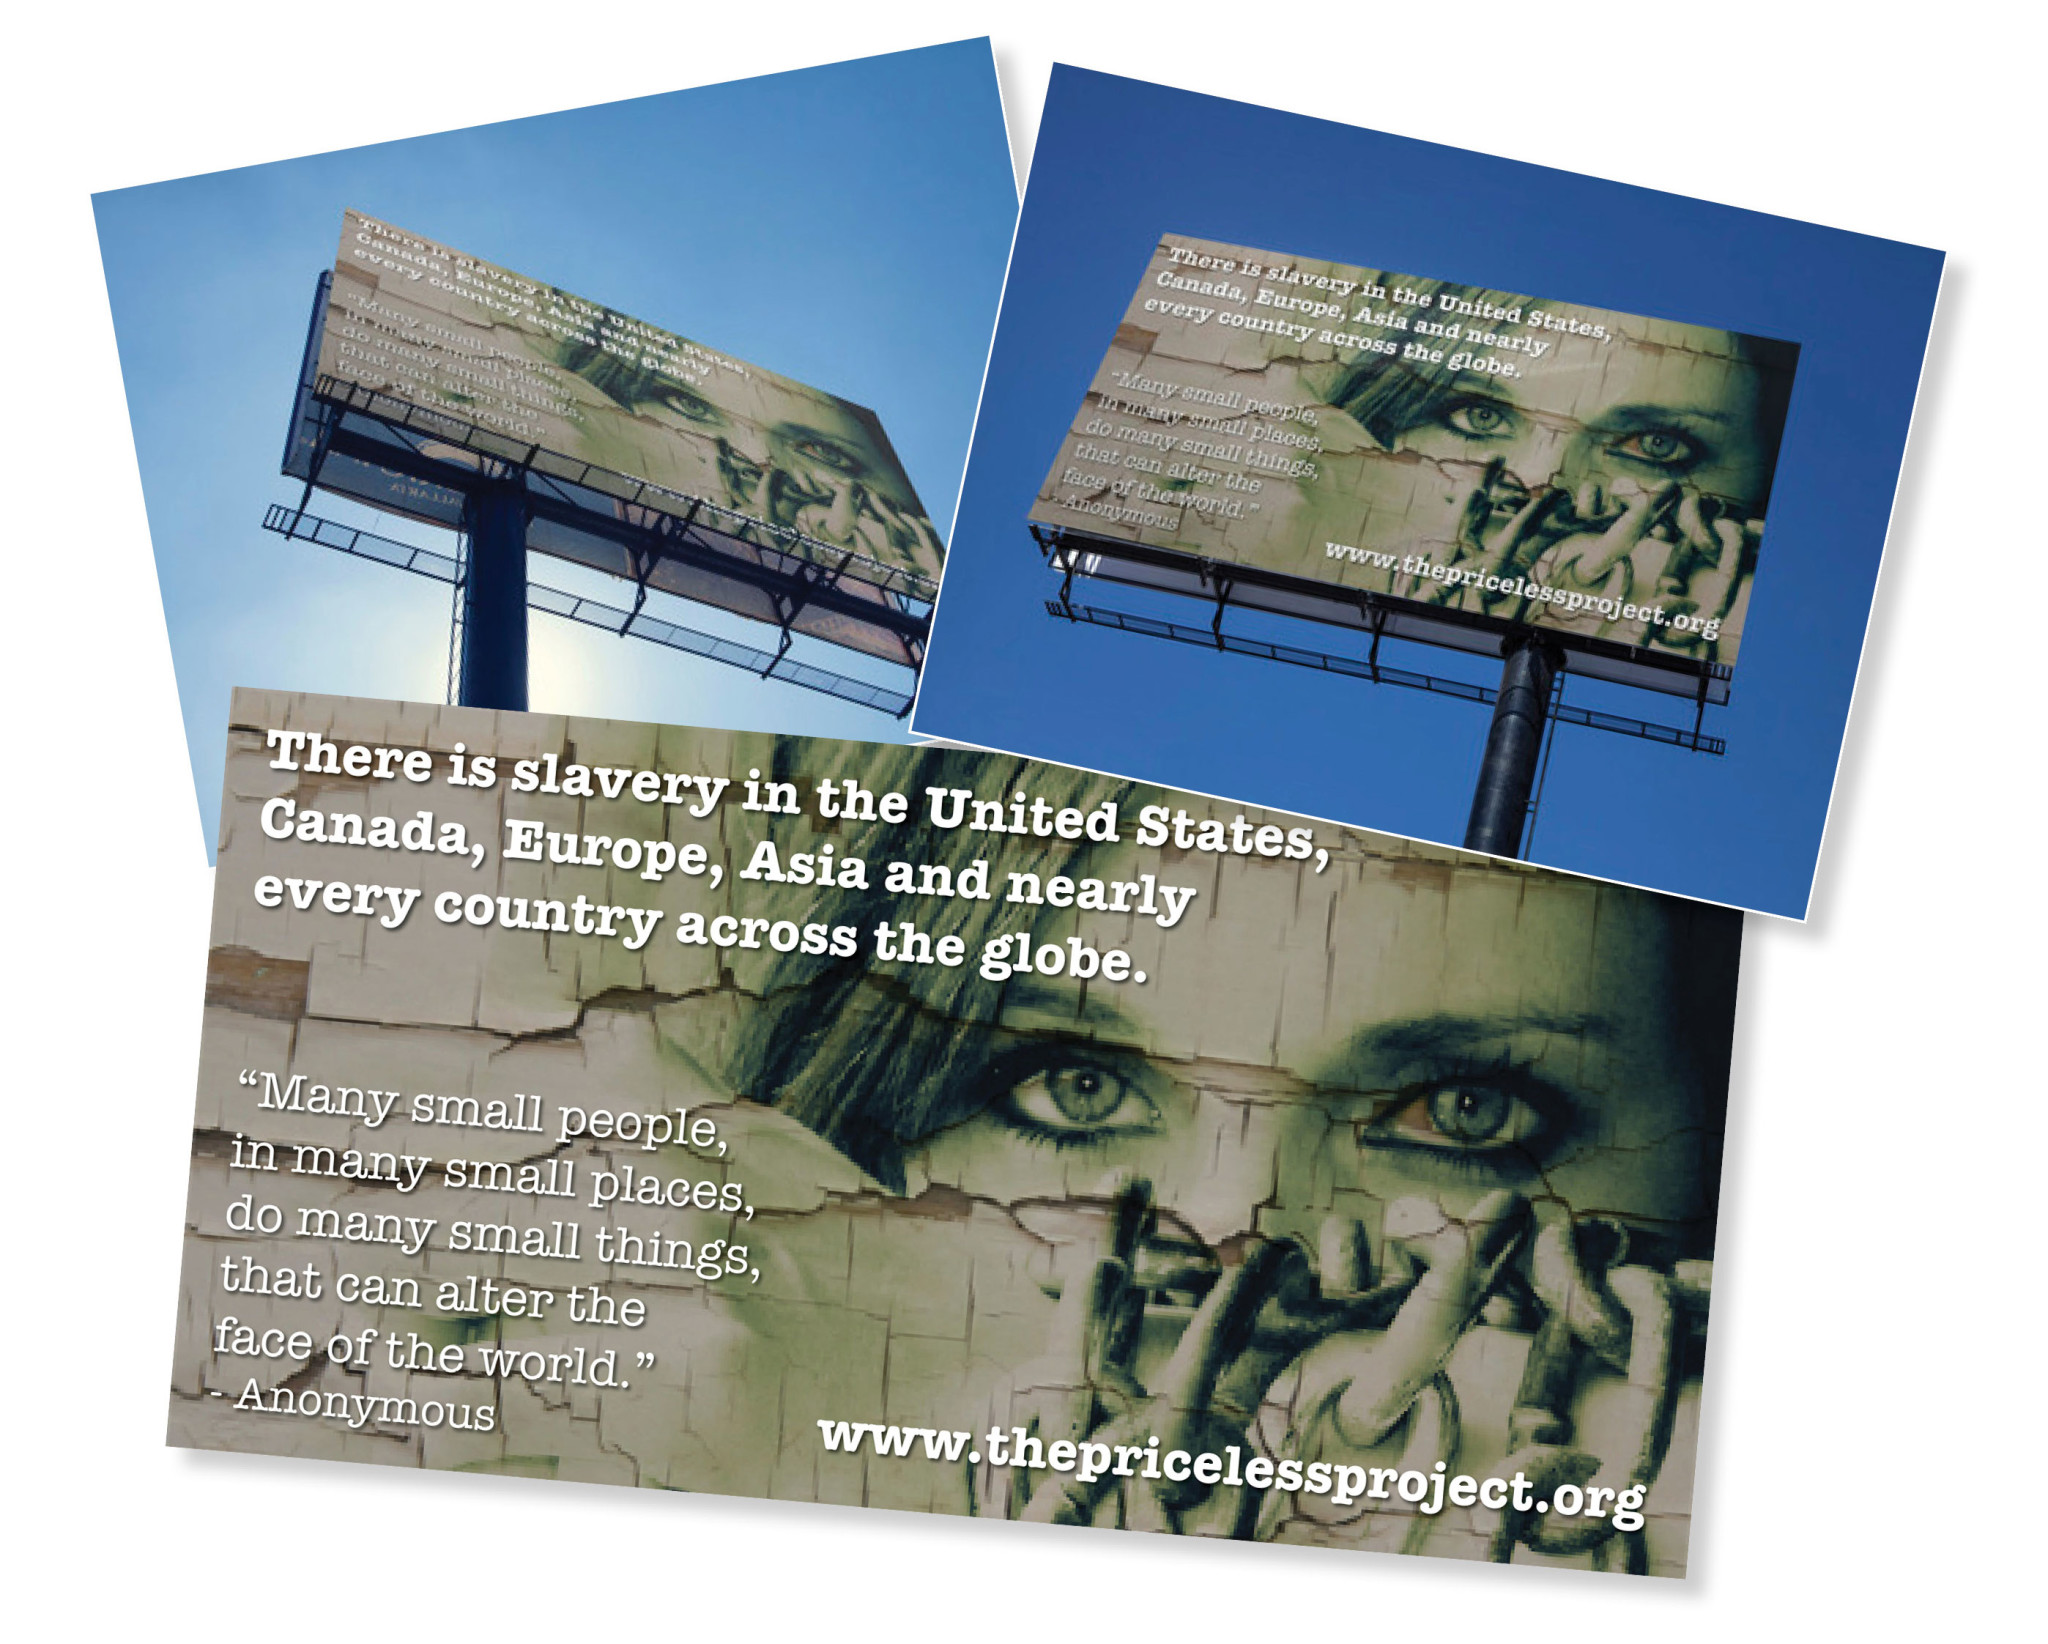 Priceless Project Human Trafficking Billboard